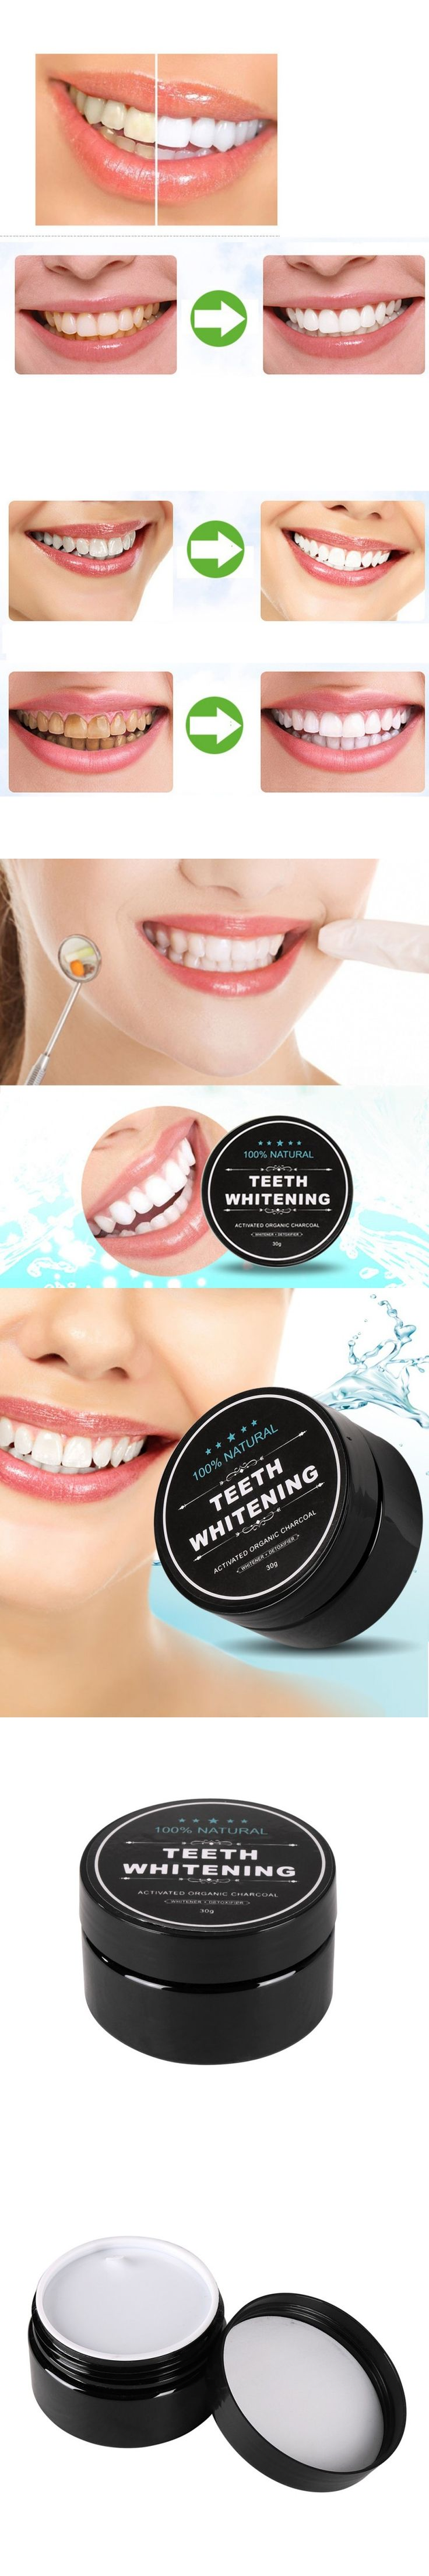 New Arrival Teeth Whitening Scaling Powder Oral Hygiene Cleaning Teeth Plaque Tartar Removal Coffee Stains Tooth Powders